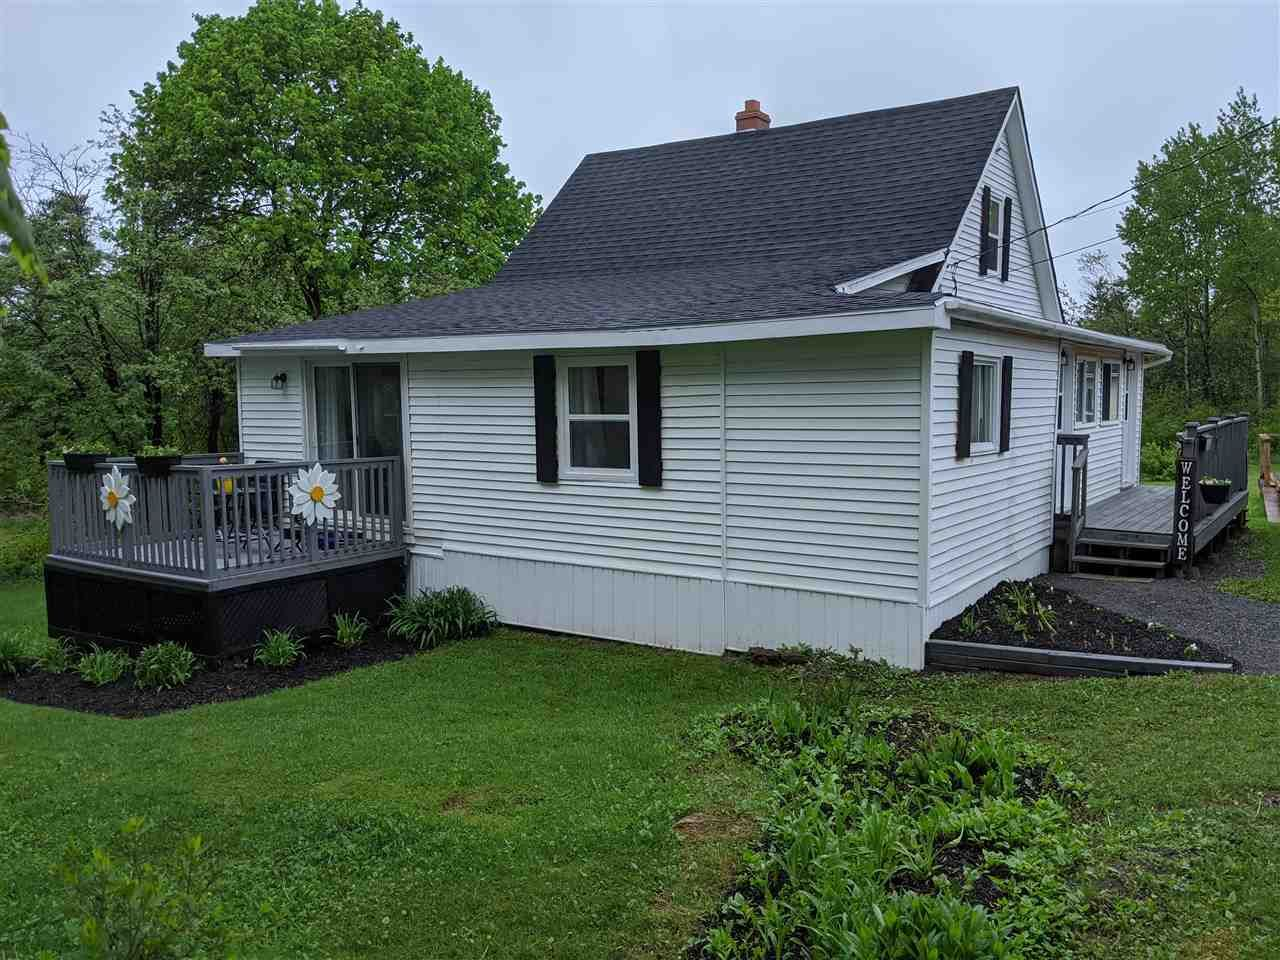 Main Photo: 682 Mackay Road in Linacy: 108-Rural Pictou County Residential for sale (Northern Region)  : MLS®# 202014860